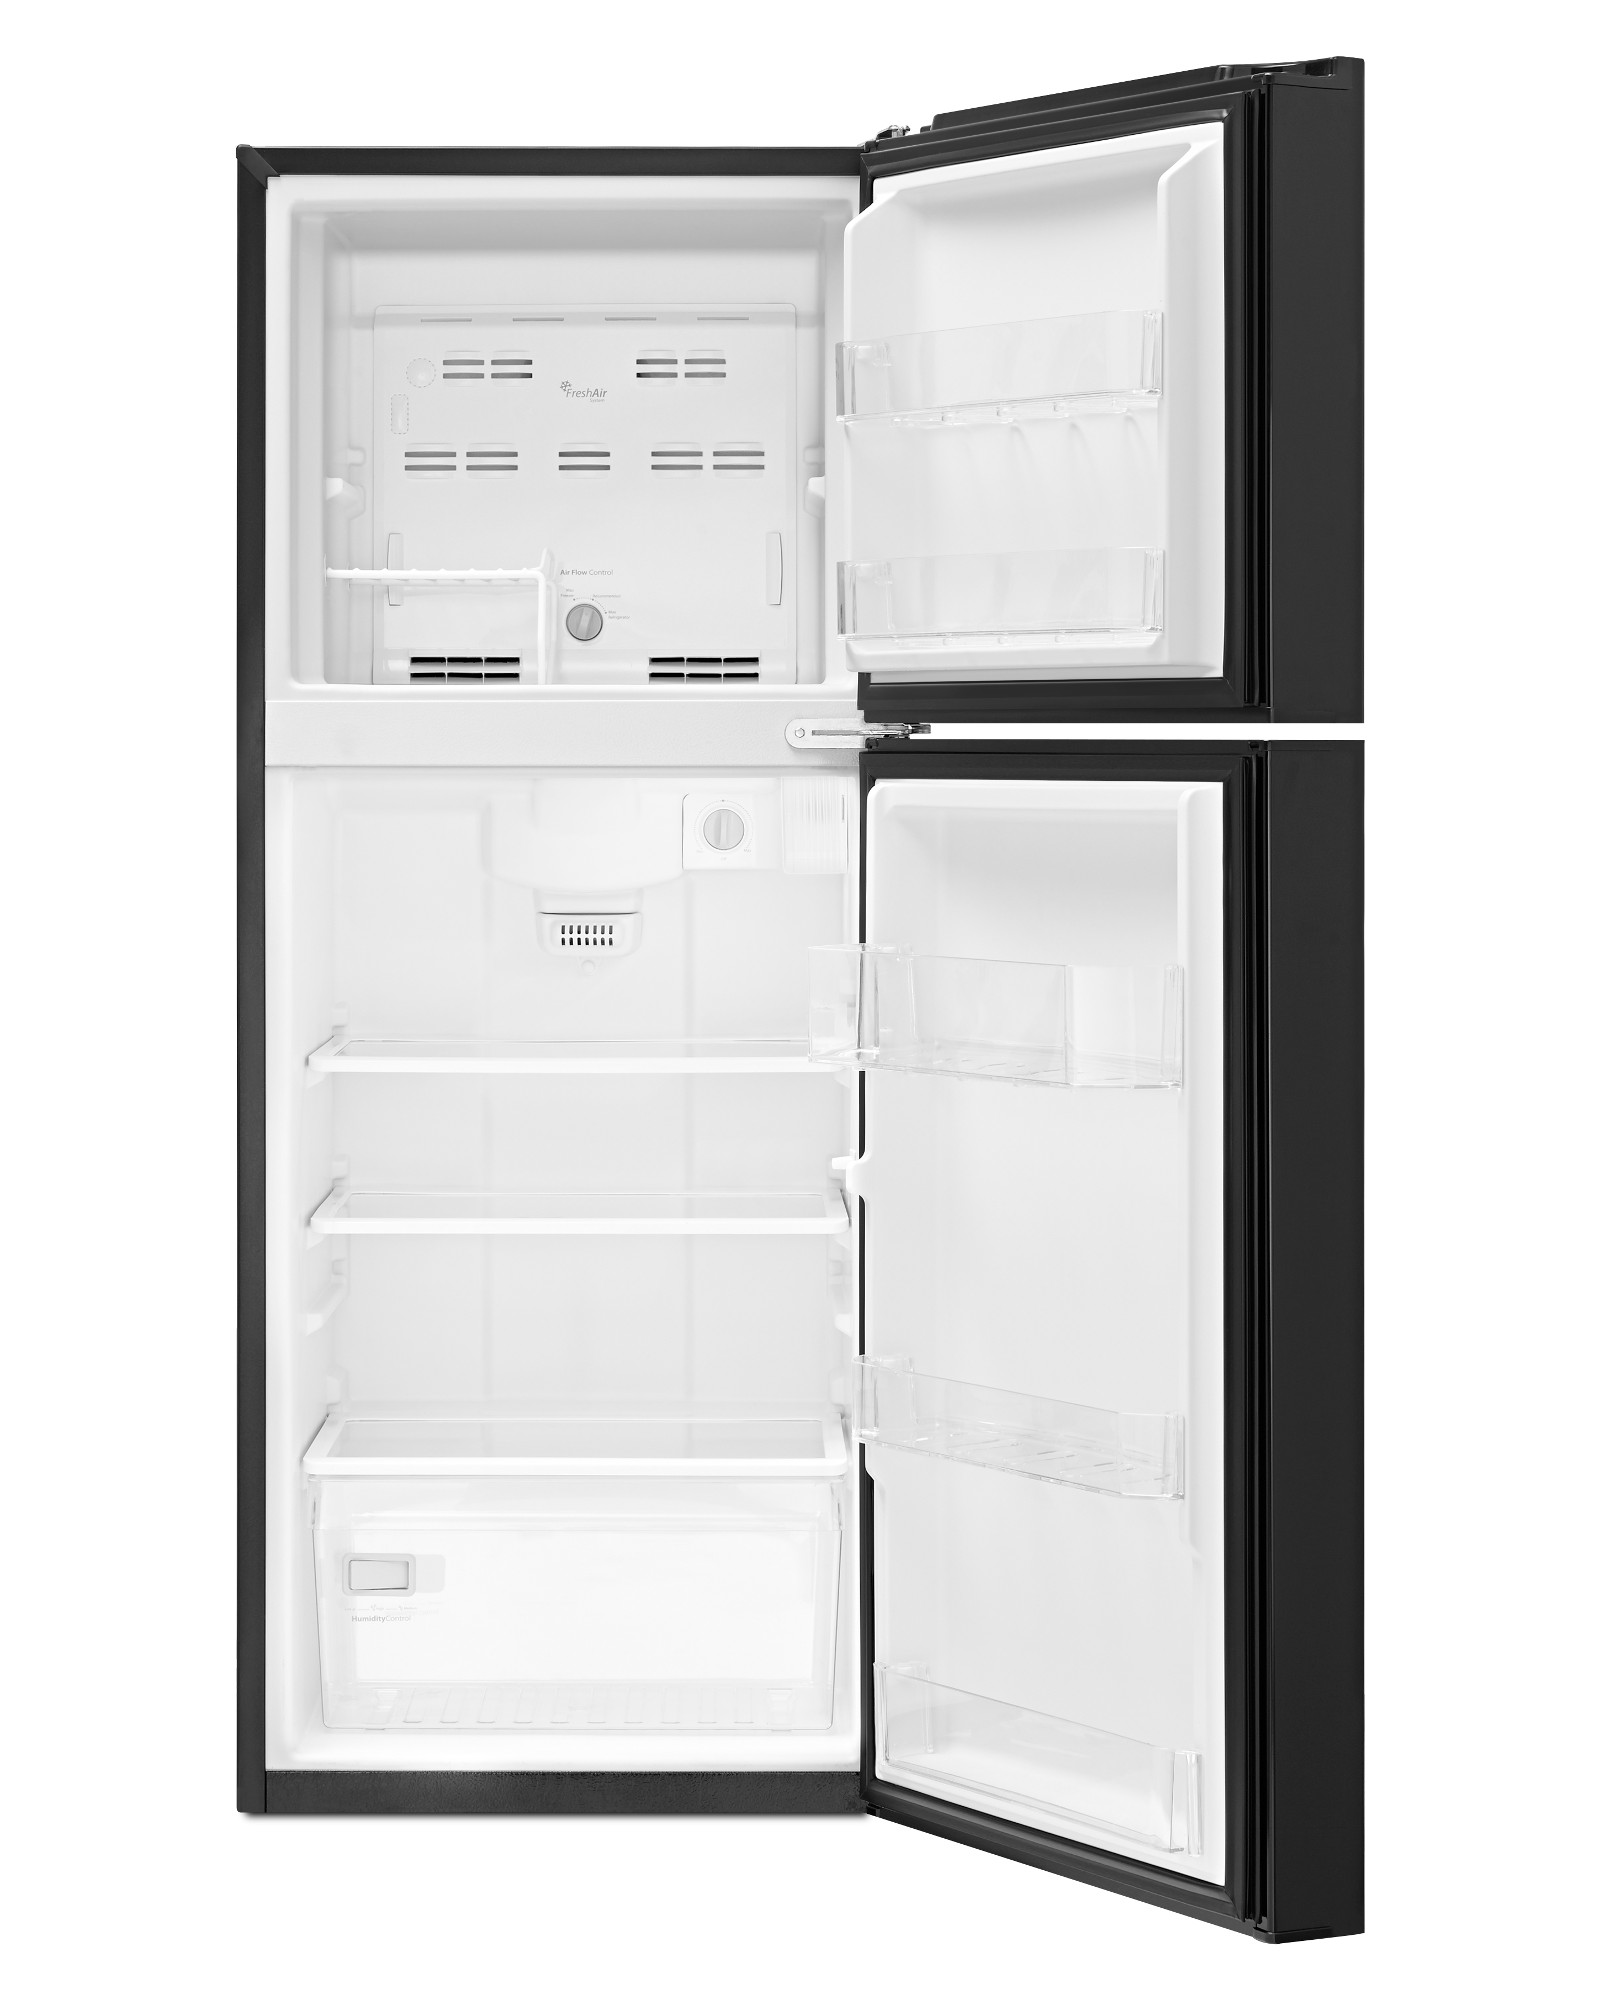 Whirlpool 11 cu. ft. Top Freezer Refrigerator - Black